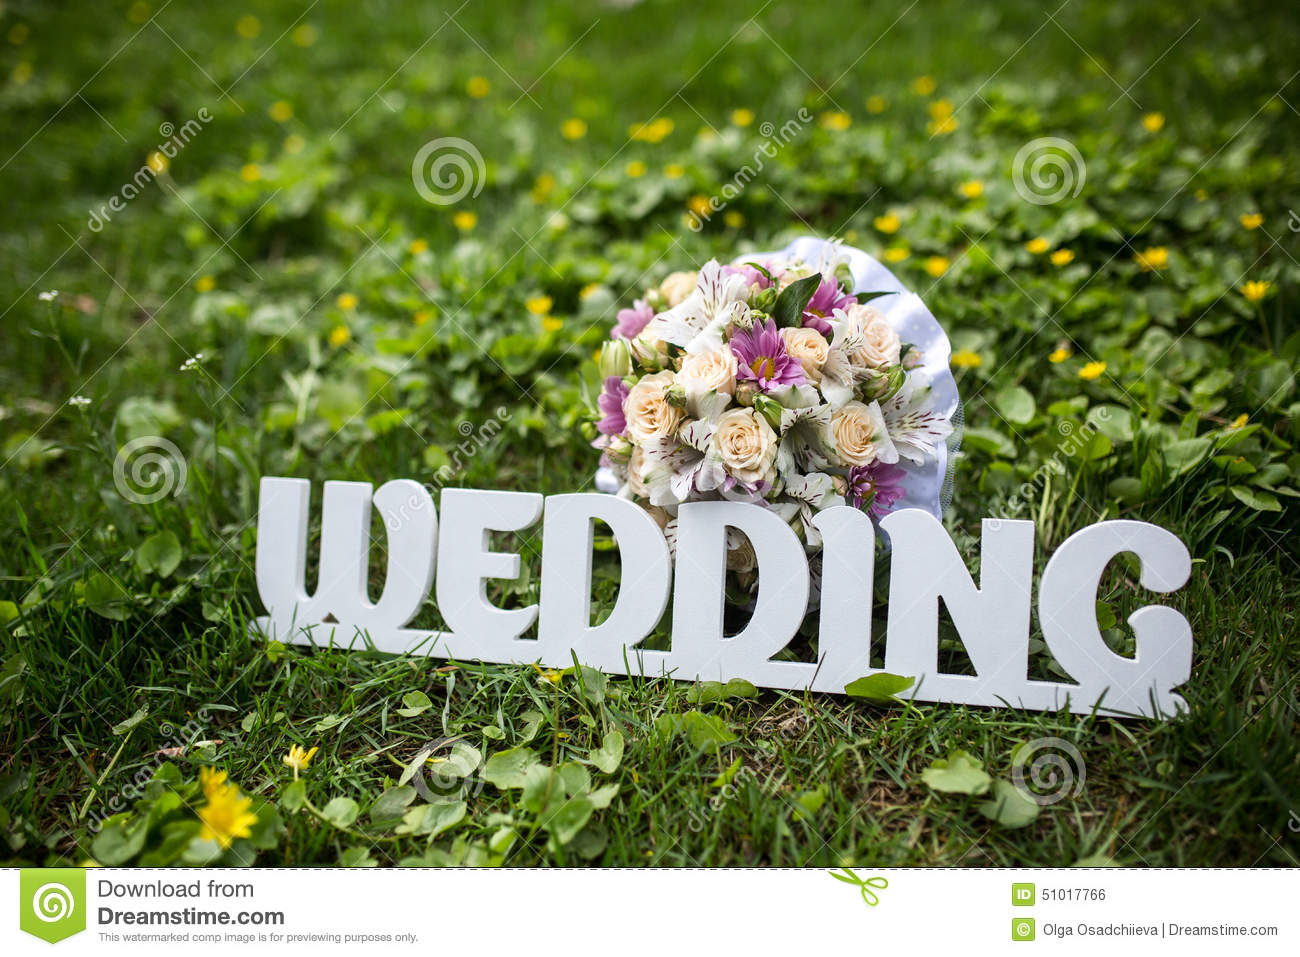 letters wedding on a green grass